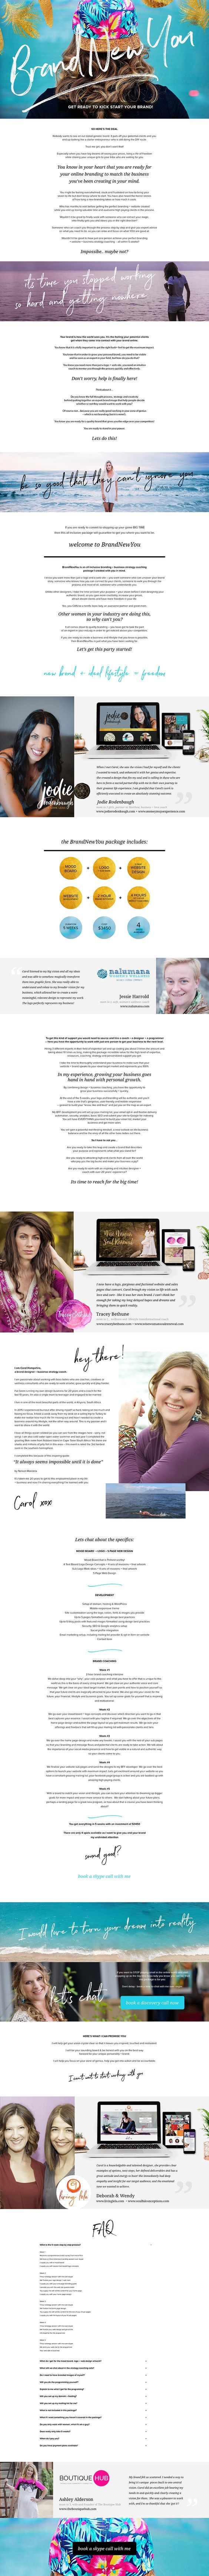 85 best inspiration sales pages images on pinterest design lovely sales page fandeluxe Image collections